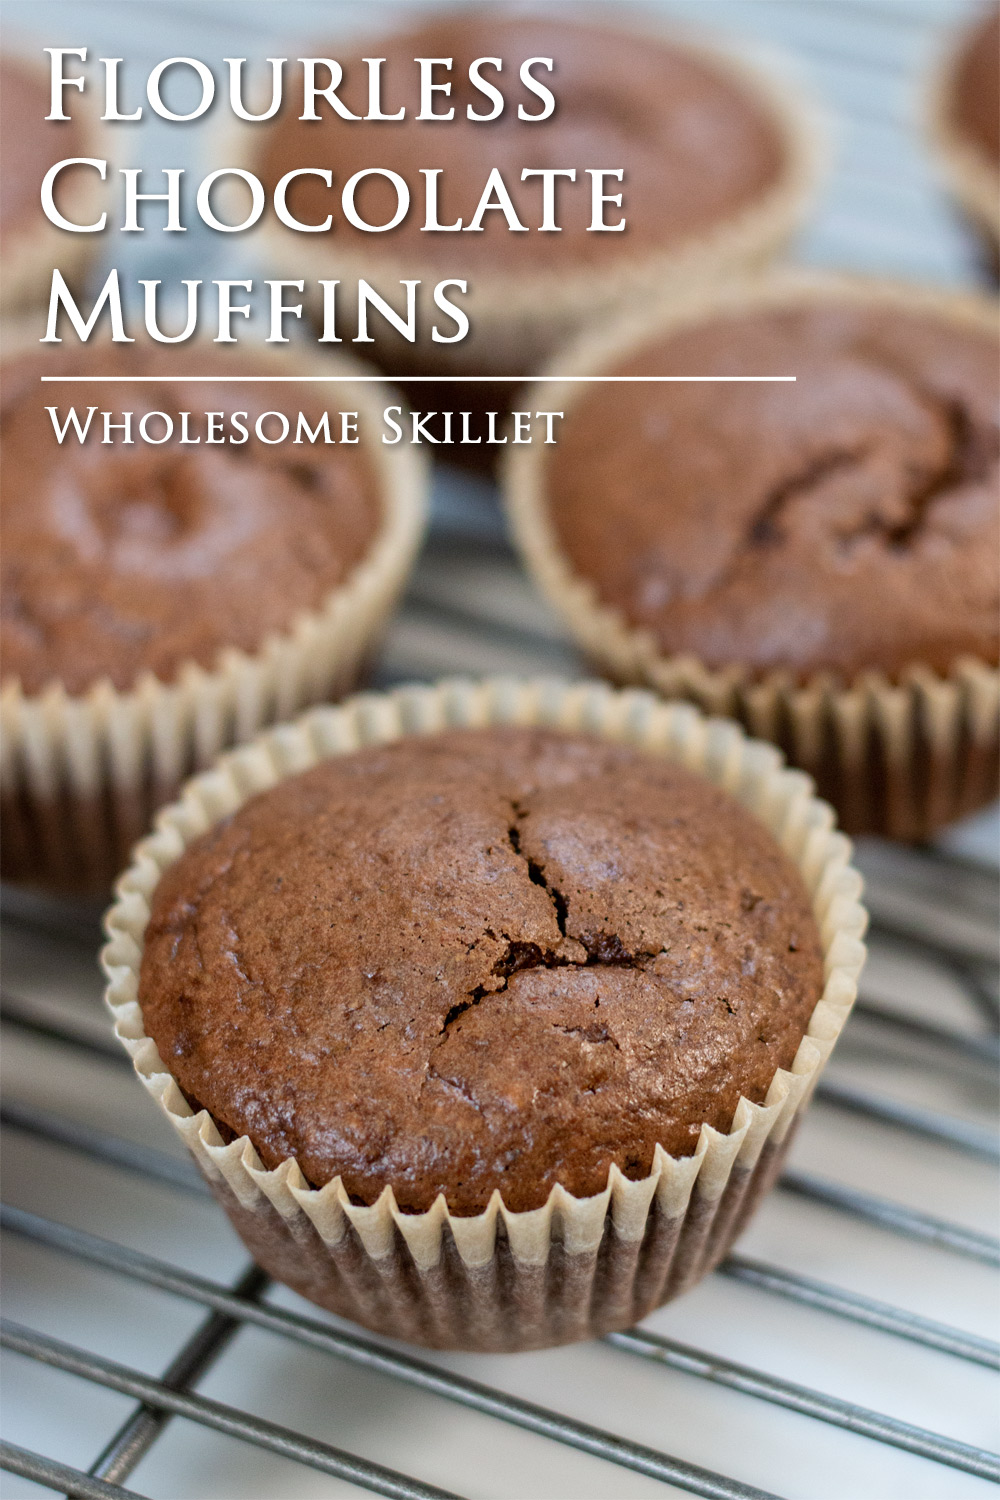 These Chocolate Muffins are moist and chocolaty. They make an excellent alternative to traditional muffins that used refined sugars or flours. These paleo muffins don't even have flour at all!